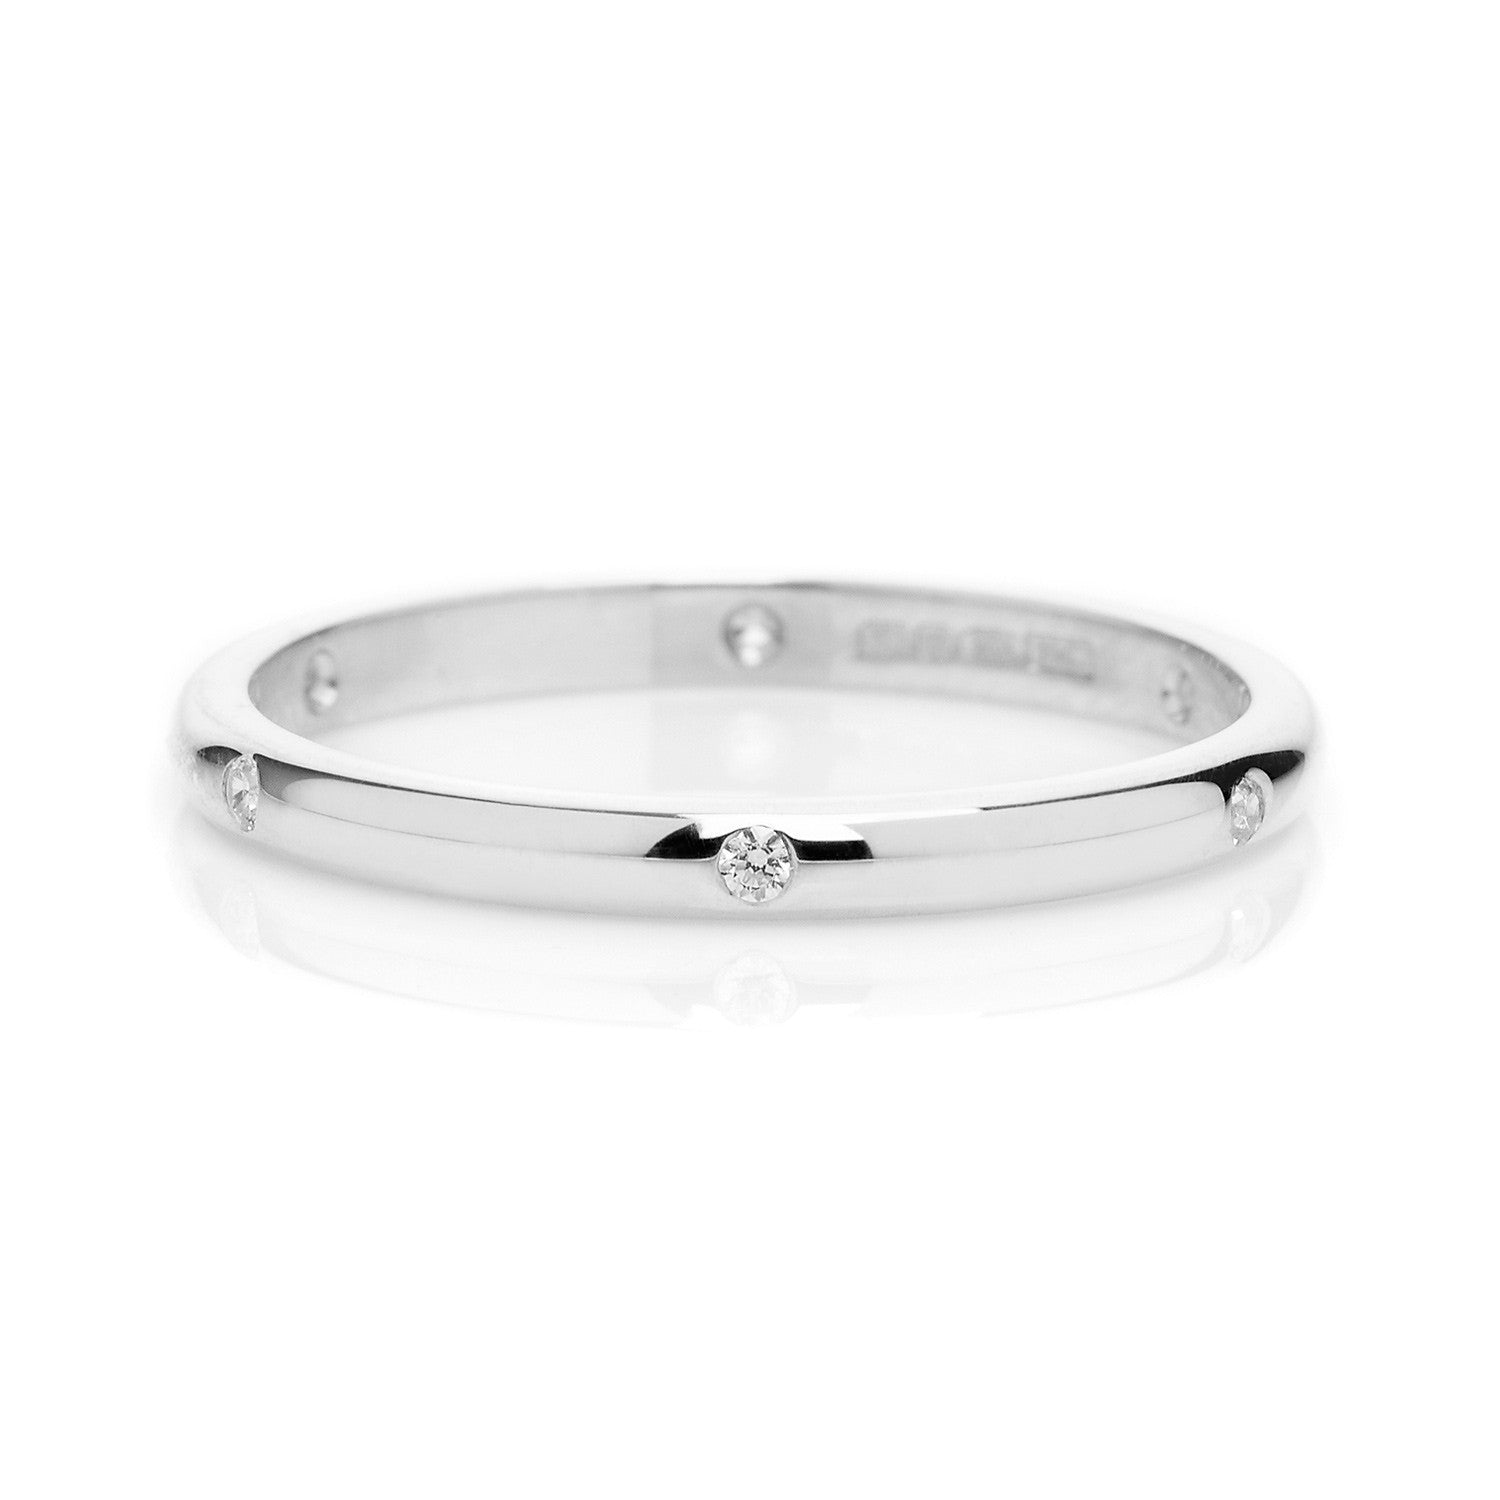 s cost mens platinum co av m usm milgrain ring wedding bands band men engagement classic op tiffany